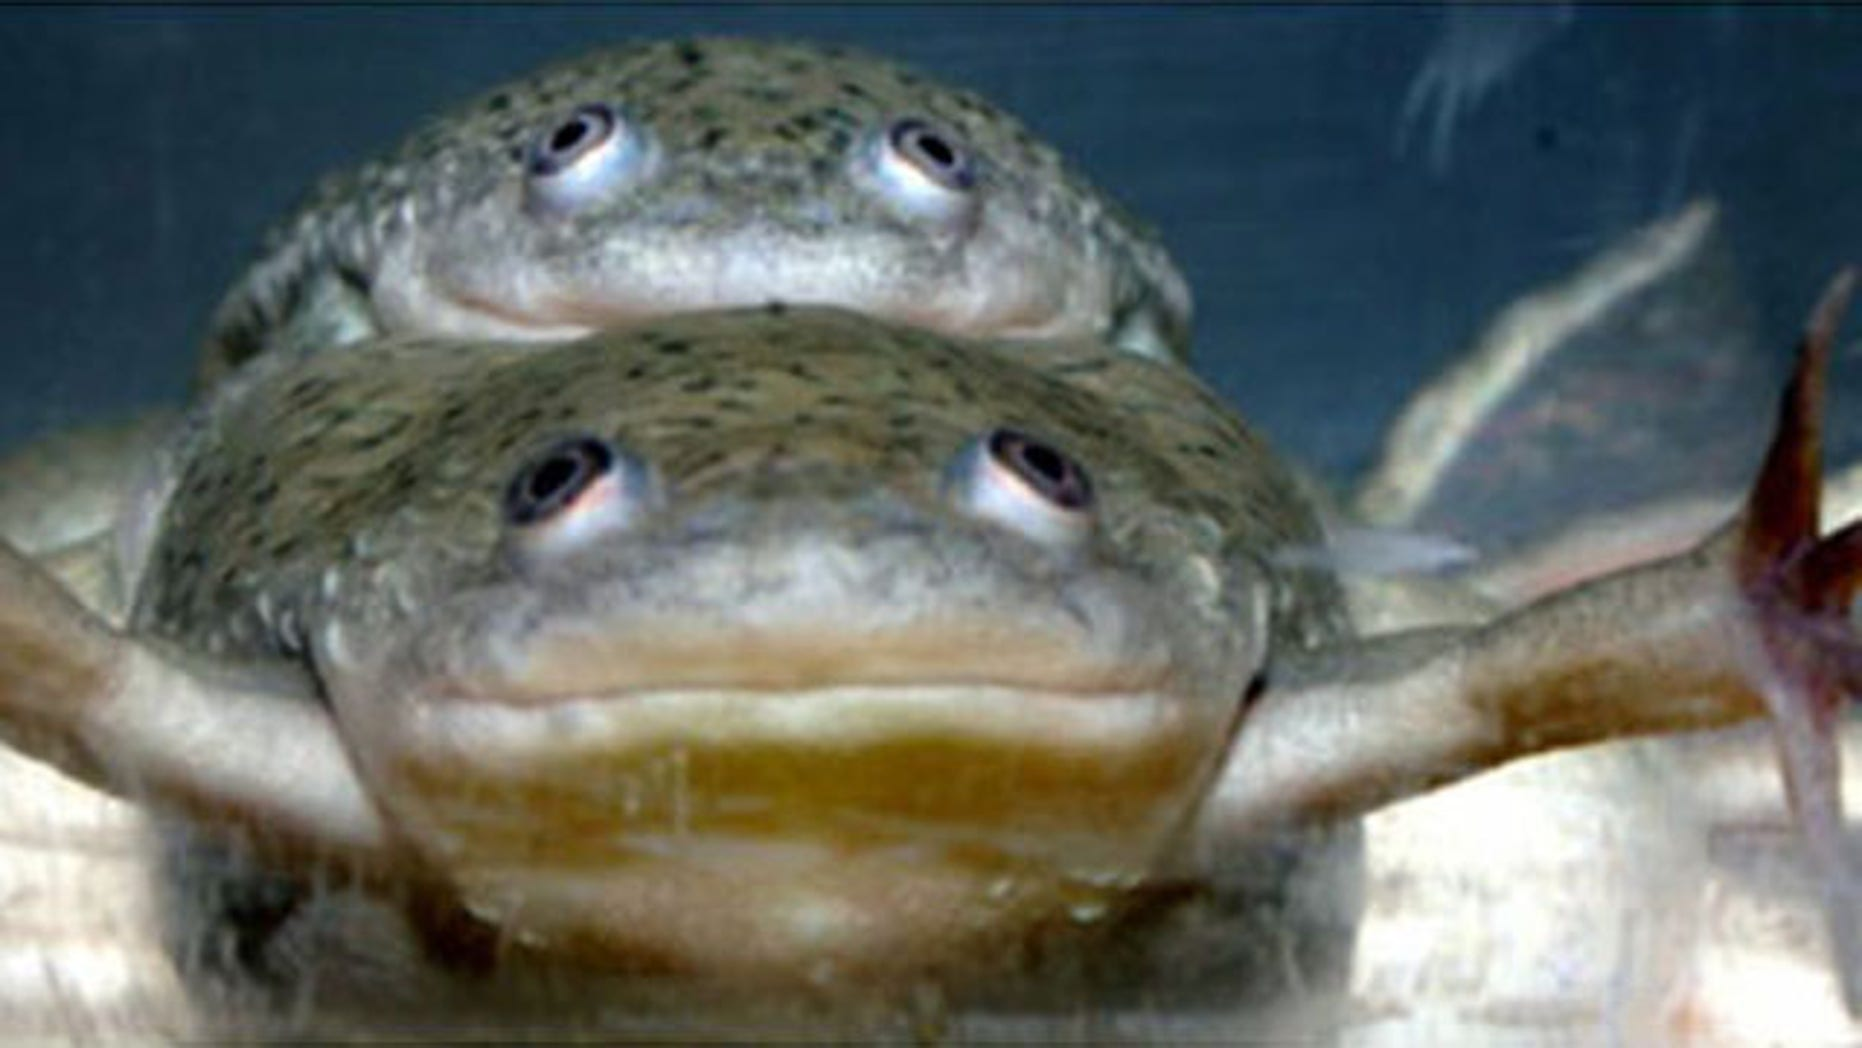 The pesticide atrazine can turn male frogs into females that are able to mate and successfully reproduce. Here, two male frogs mating. The larger animal on the bottom has been completely feminized by atrazine exposure and can produce viable eggs.